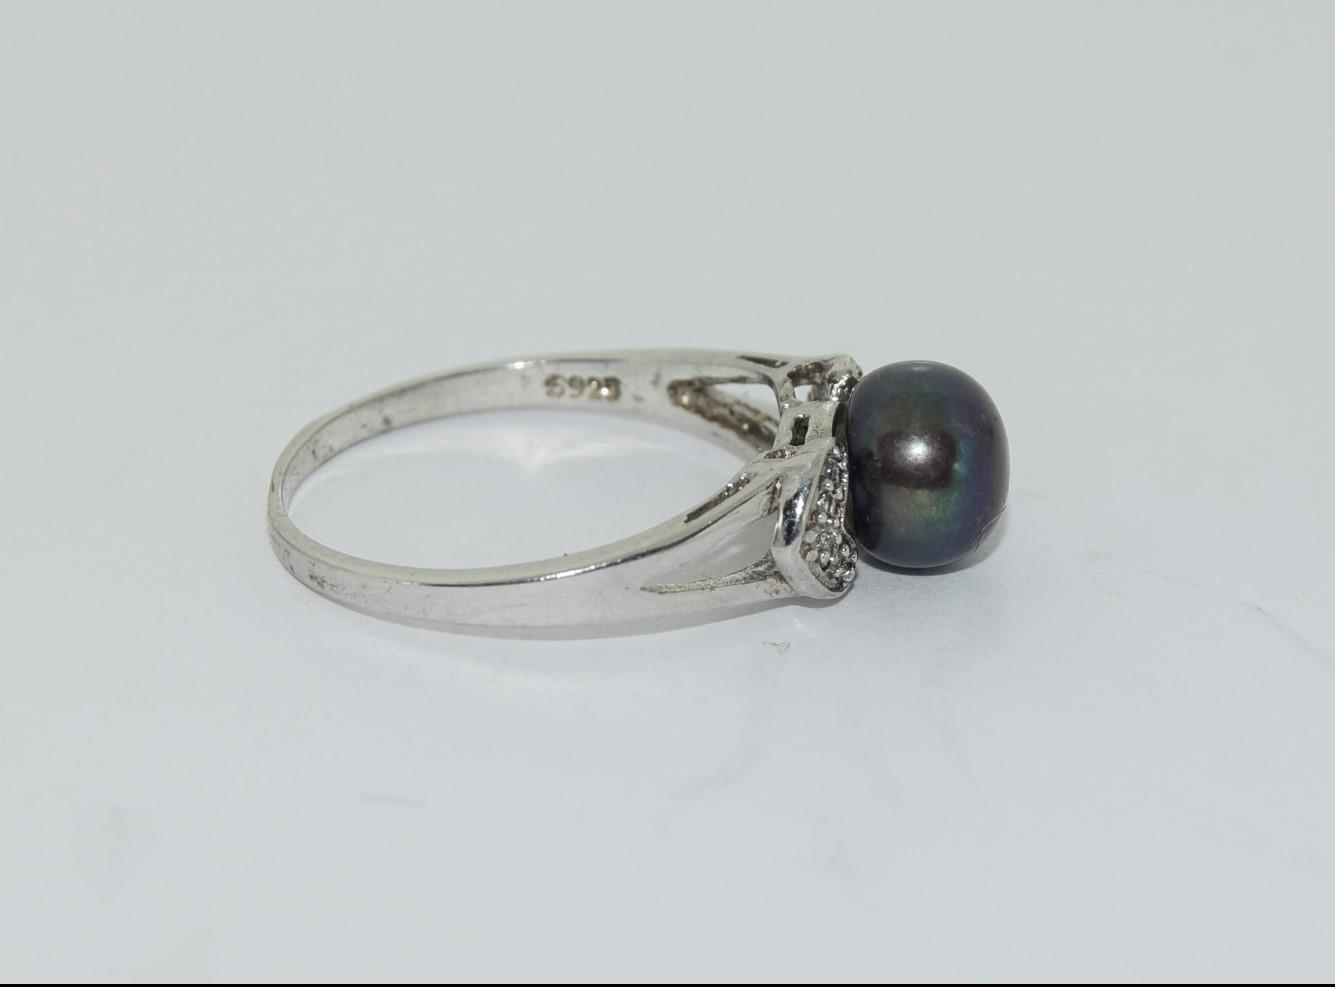 Silver ladies ring set with round pearl mount. Size O. - Image 2 of 3